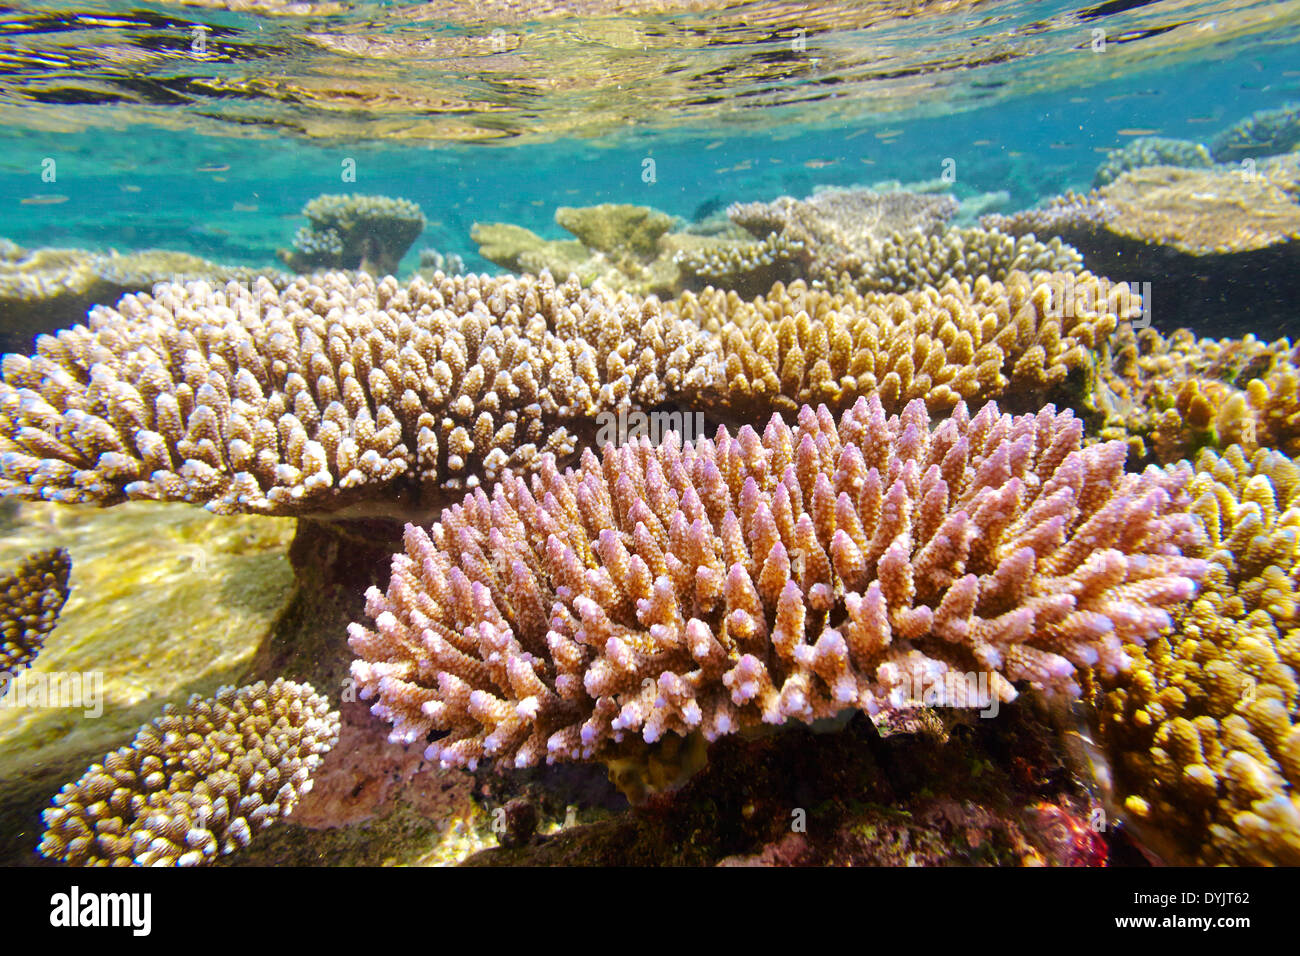 Shallow coral reef, Maldives, Indian Ocean - Stock Image